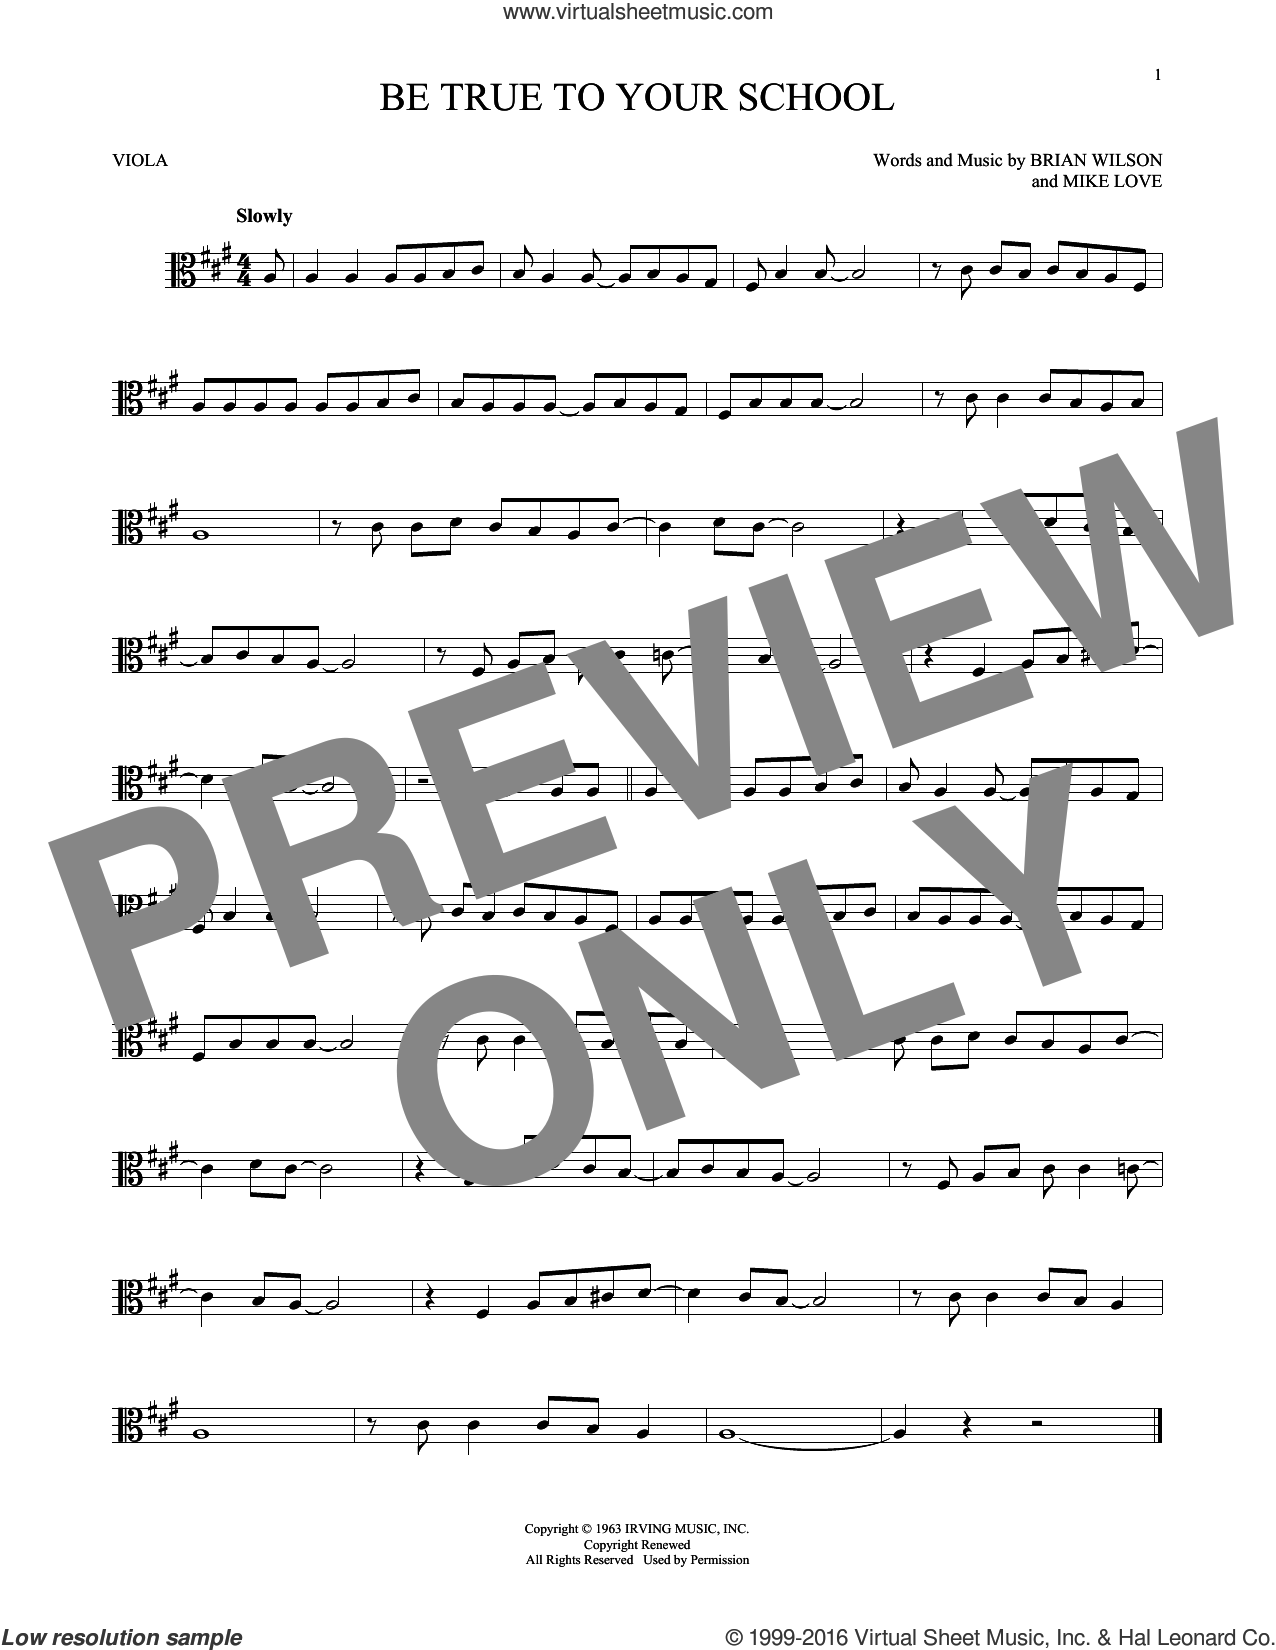 Be True To Your School sheet music for viola solo by Mike Love, The Beach Boys and Brian Wilson. Score Image Preview.